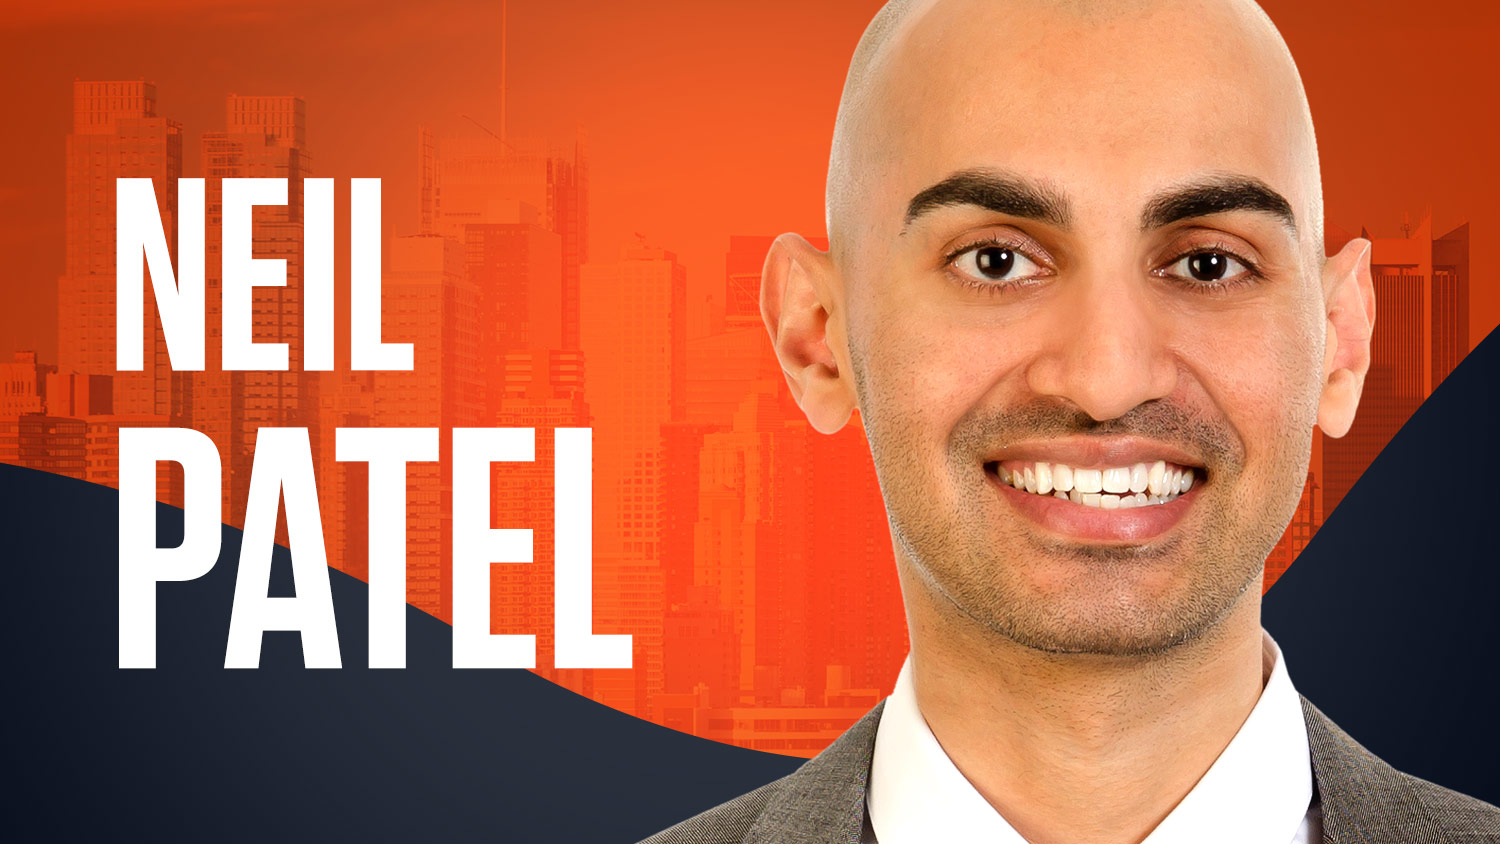 Neil Patel Interview Tips And Tricks For Online Marketers